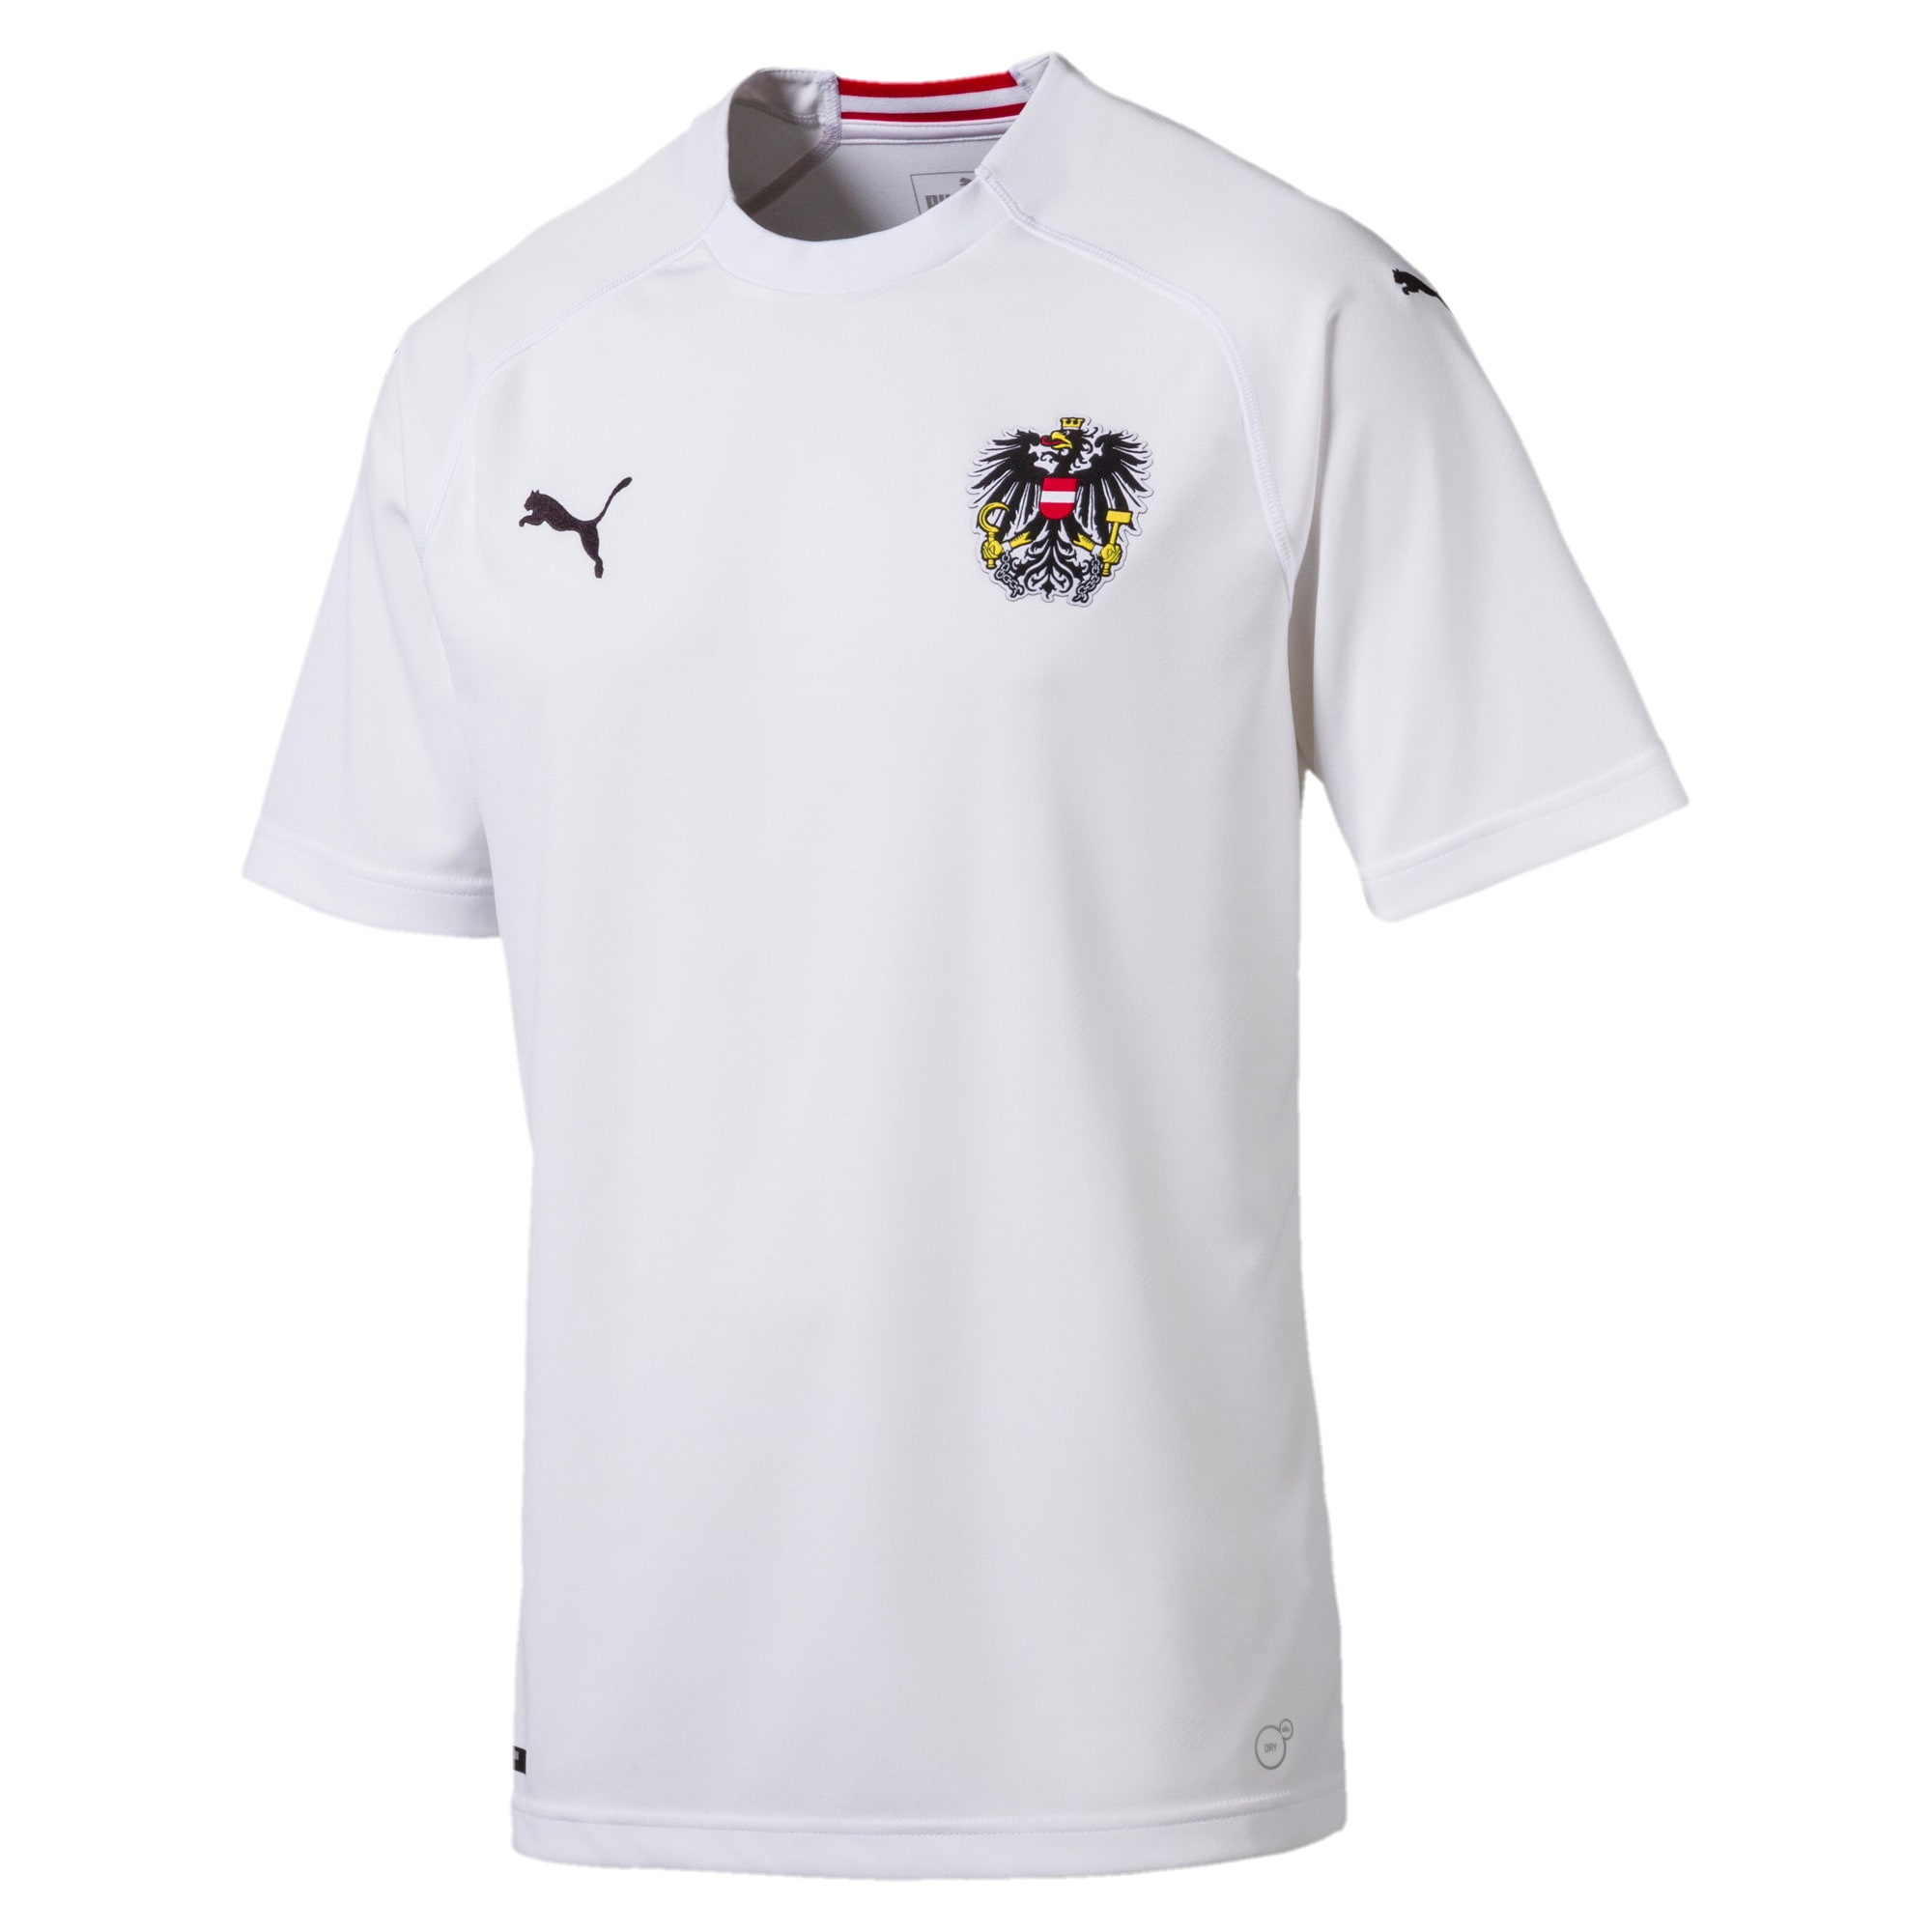 Thumbnail 5 of Austria Away Replica Shirt, Puma White, medium